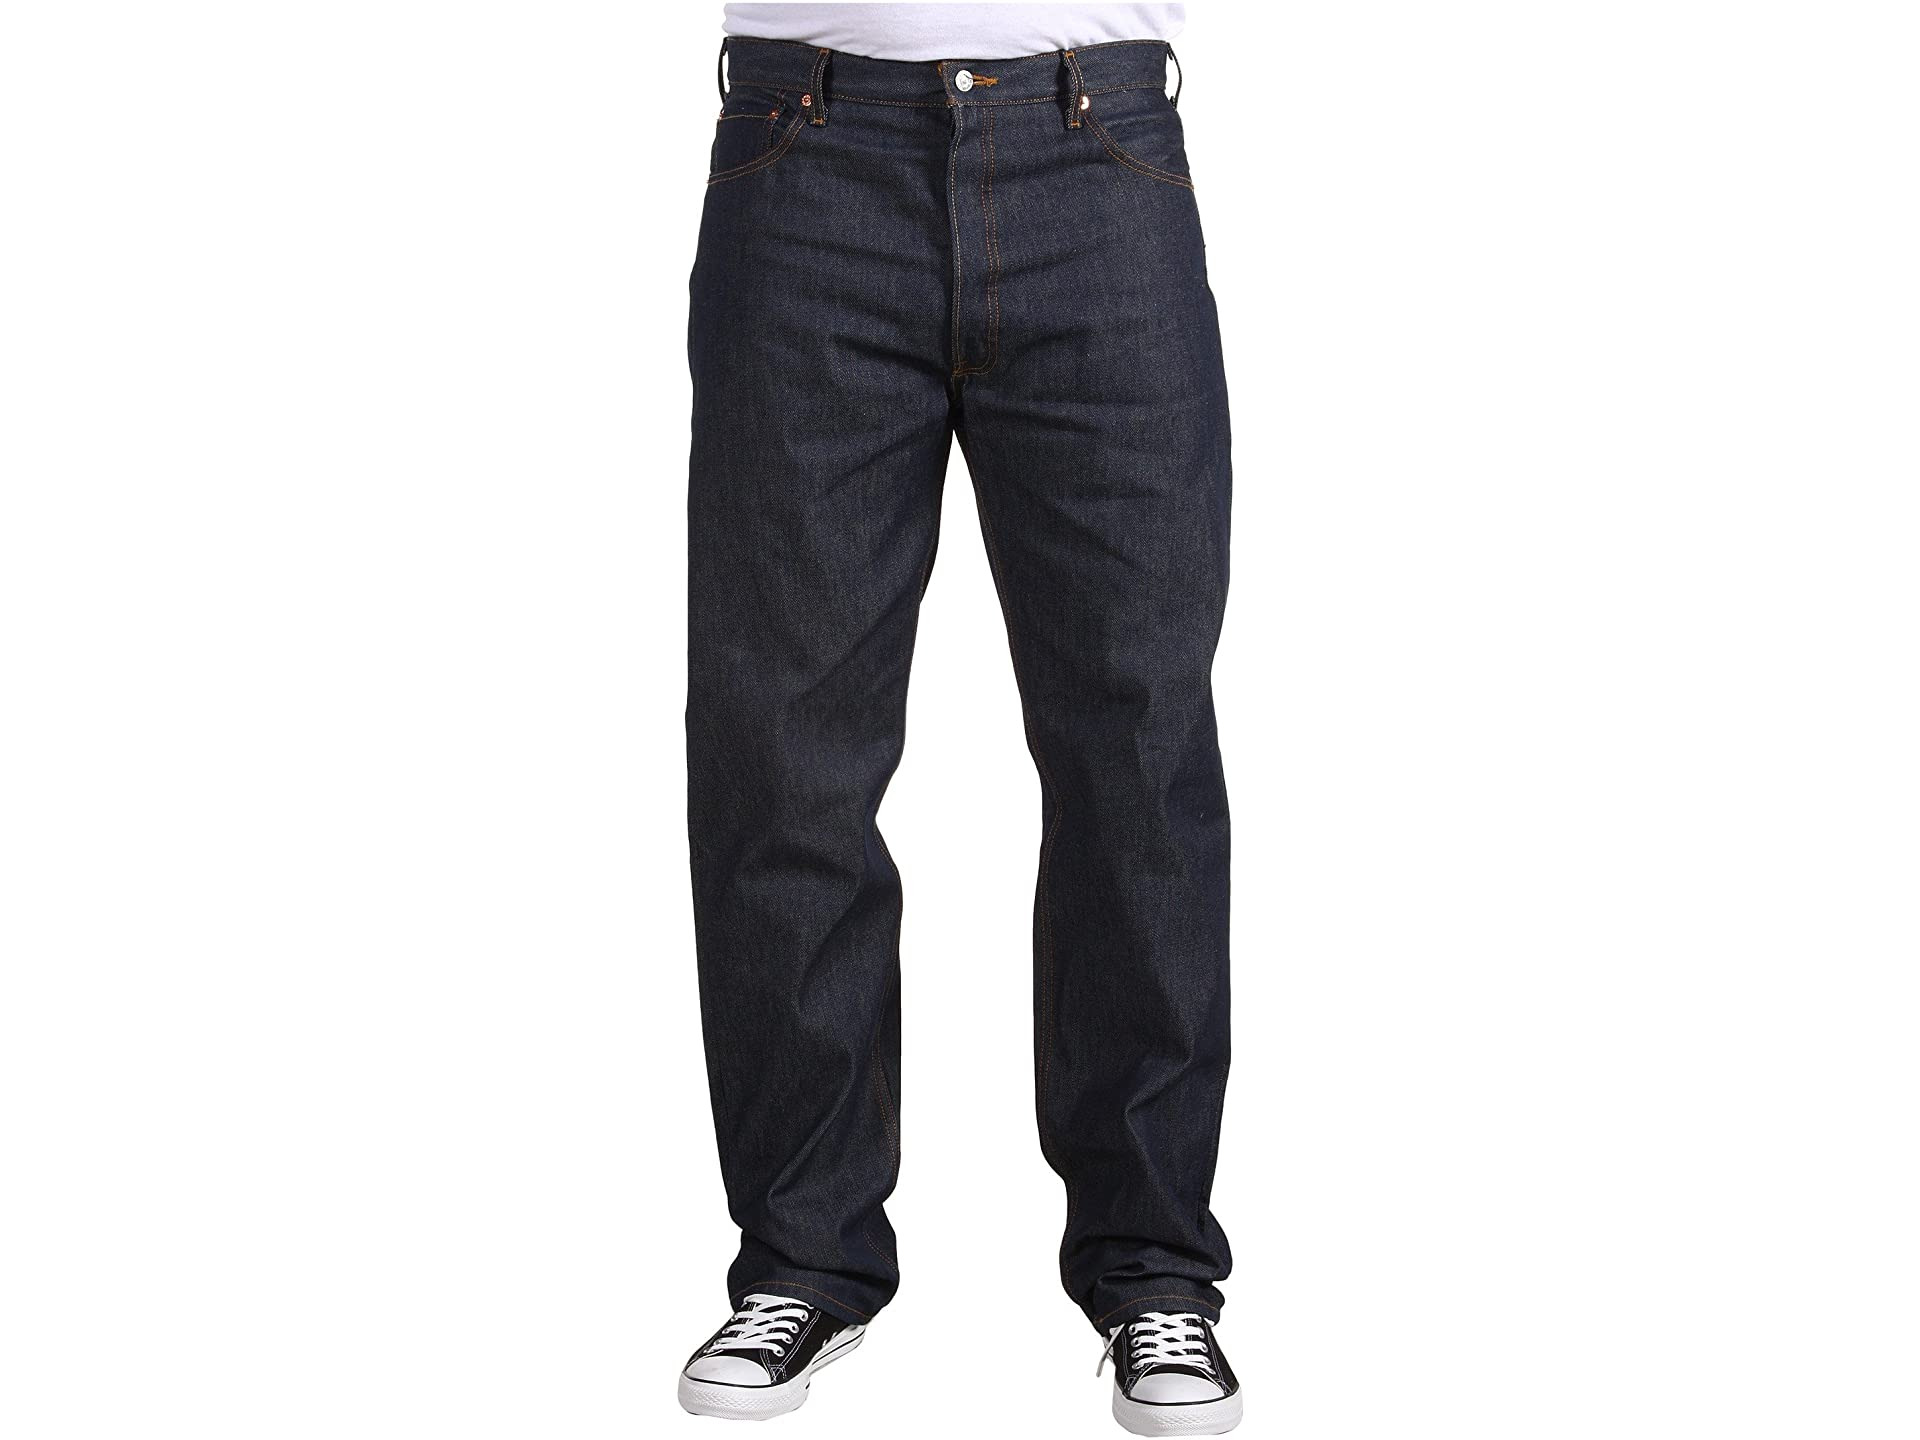 How to Shrink the Waist of Jeans recommendations